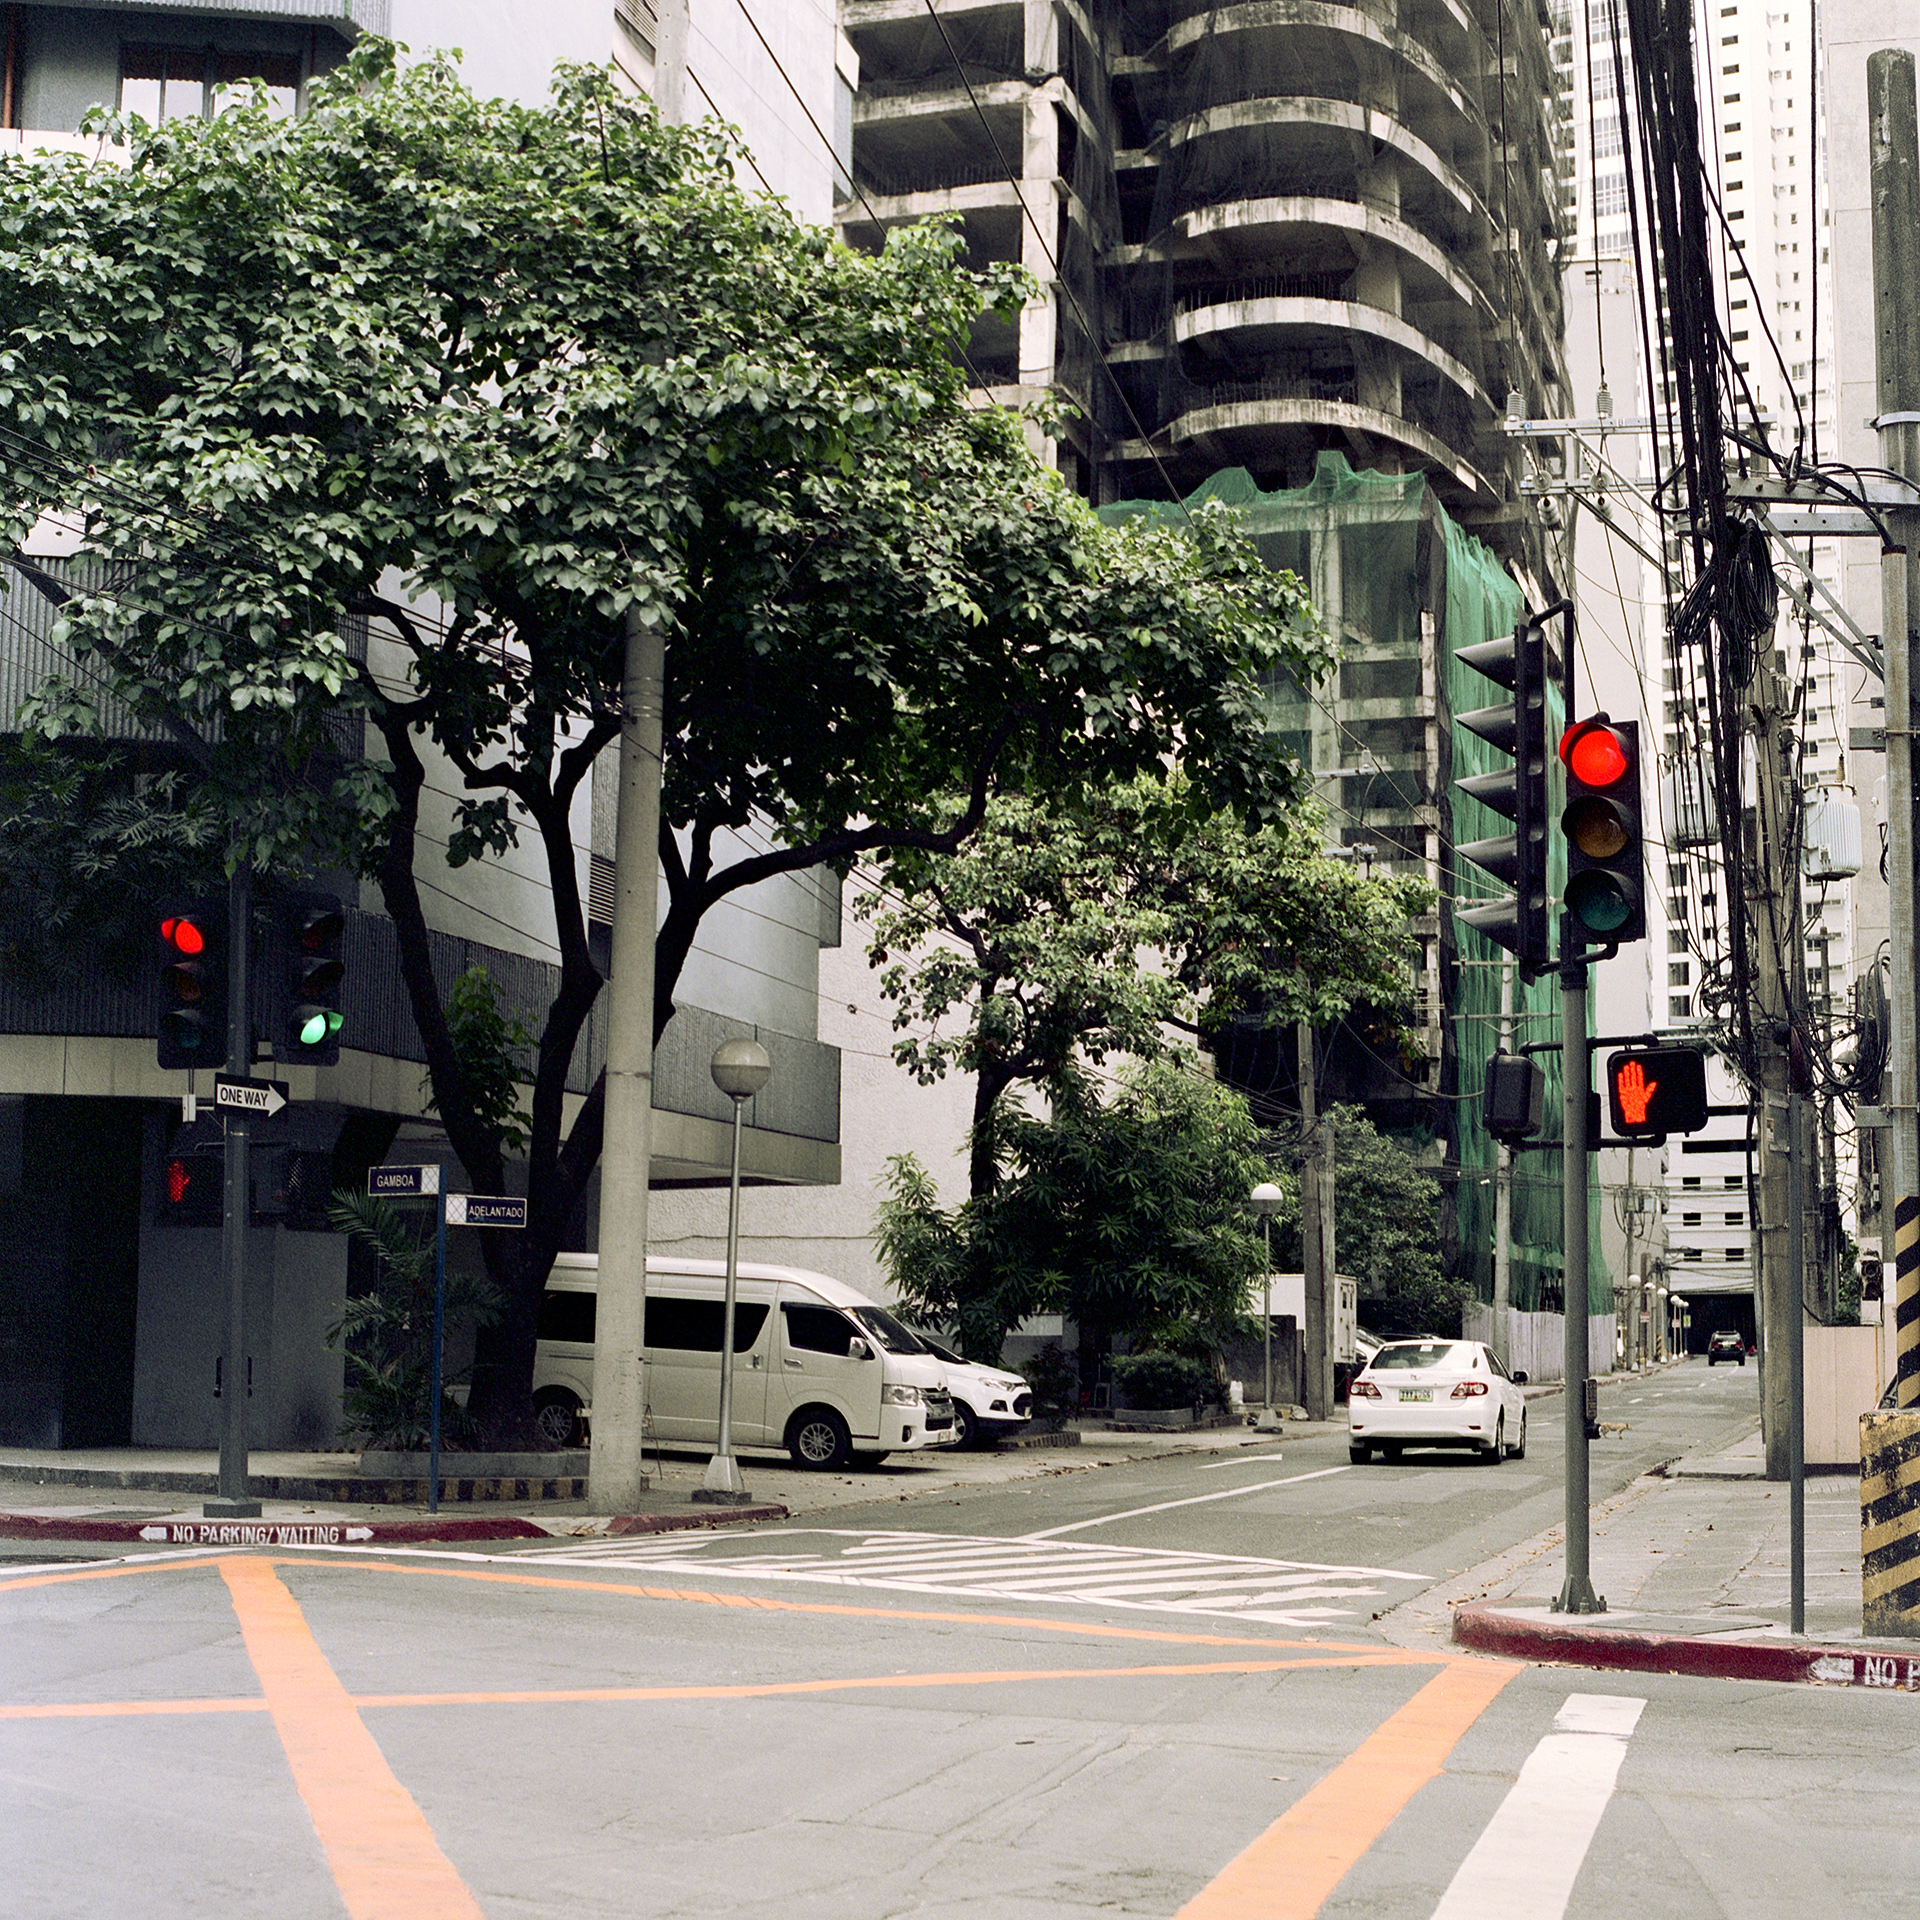 Random intersection on a quiet day in Makati